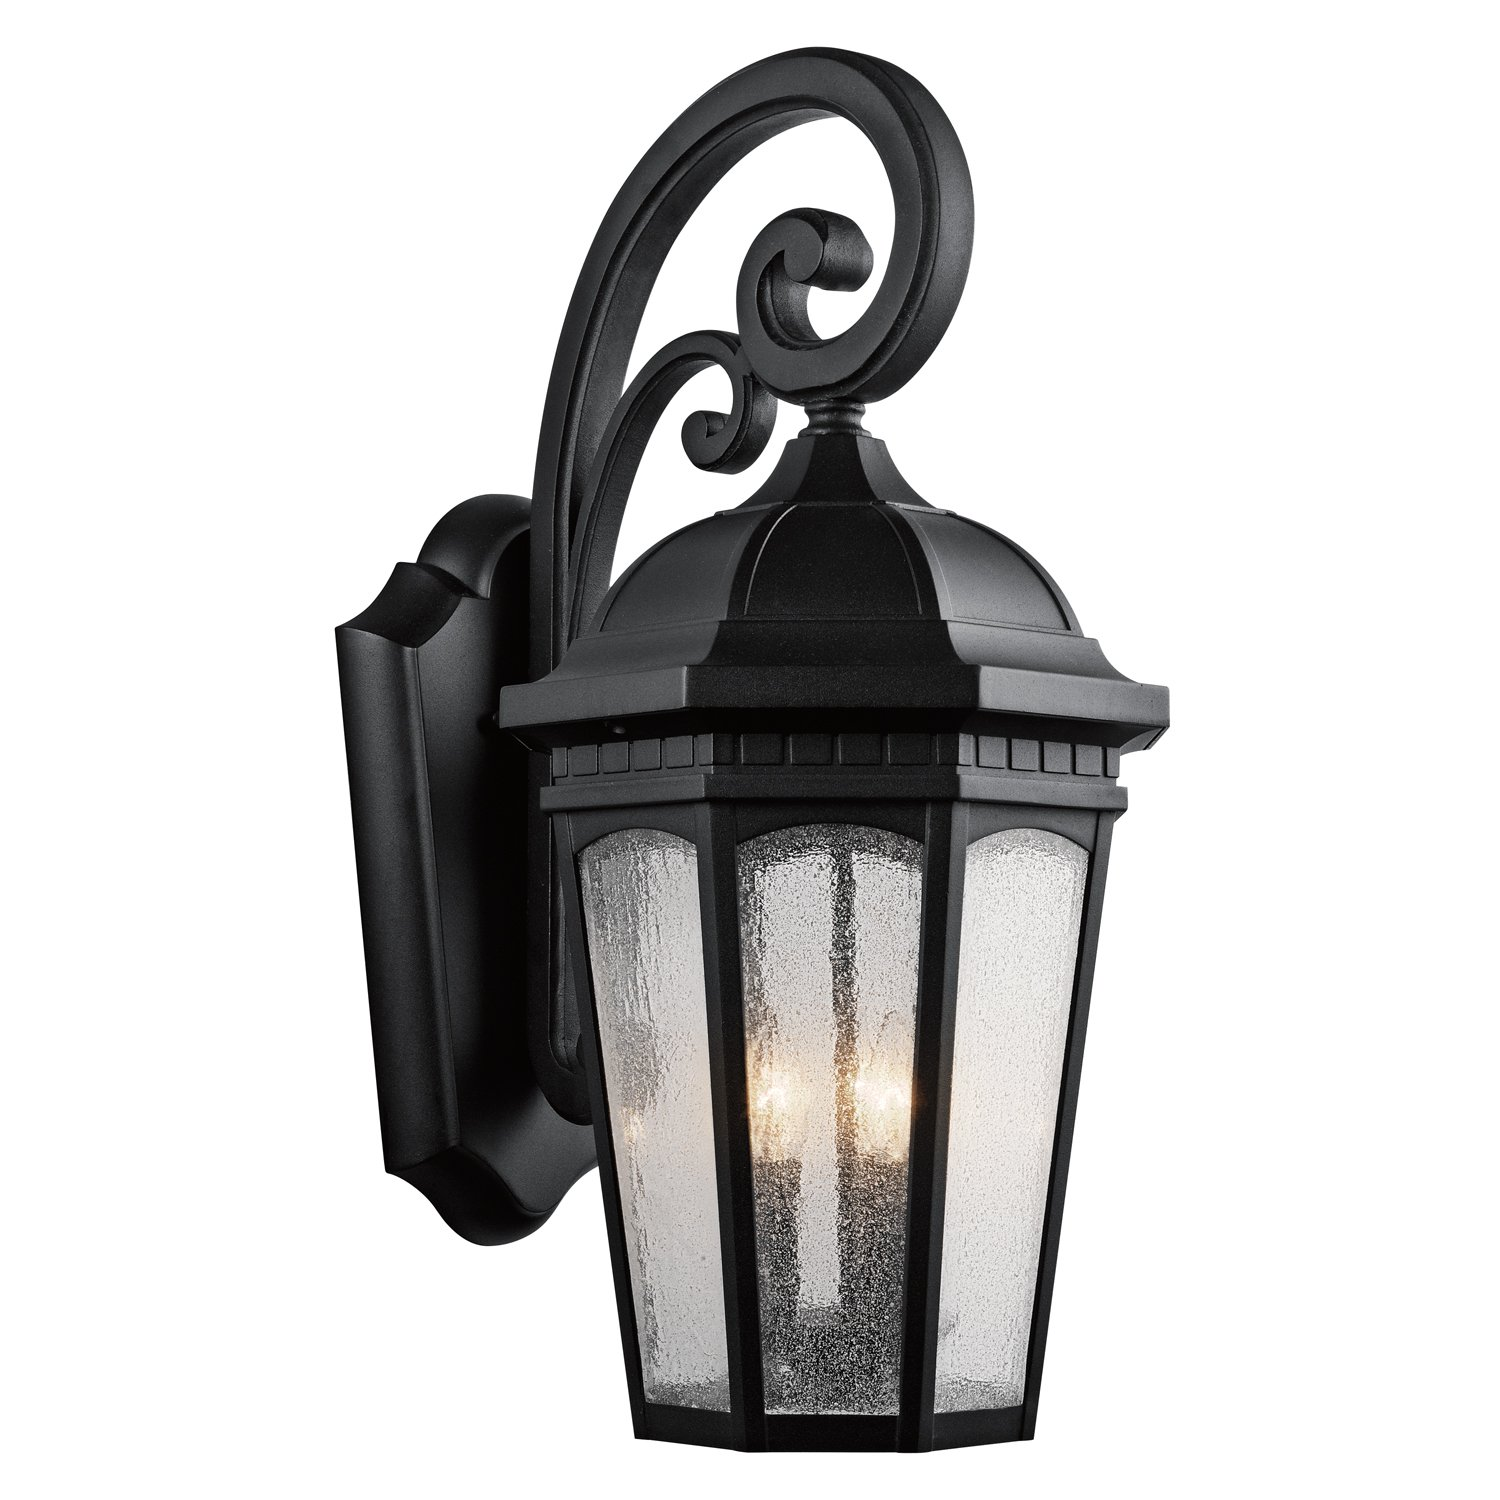 Kichler 9035BKT Three Light Outdoor Wall Mount